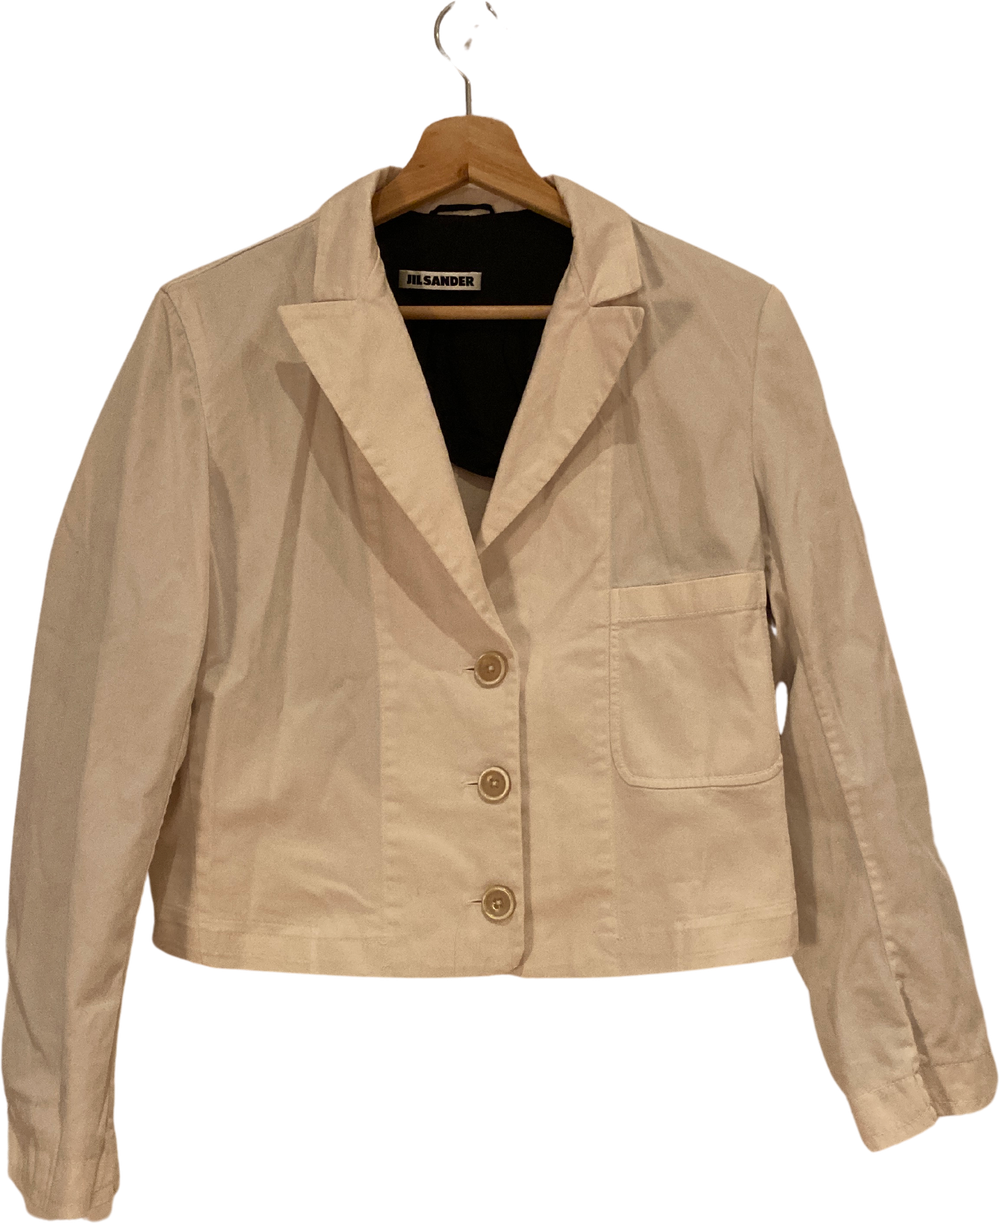 White Cotton Mix Jil Sander Blazer Crop